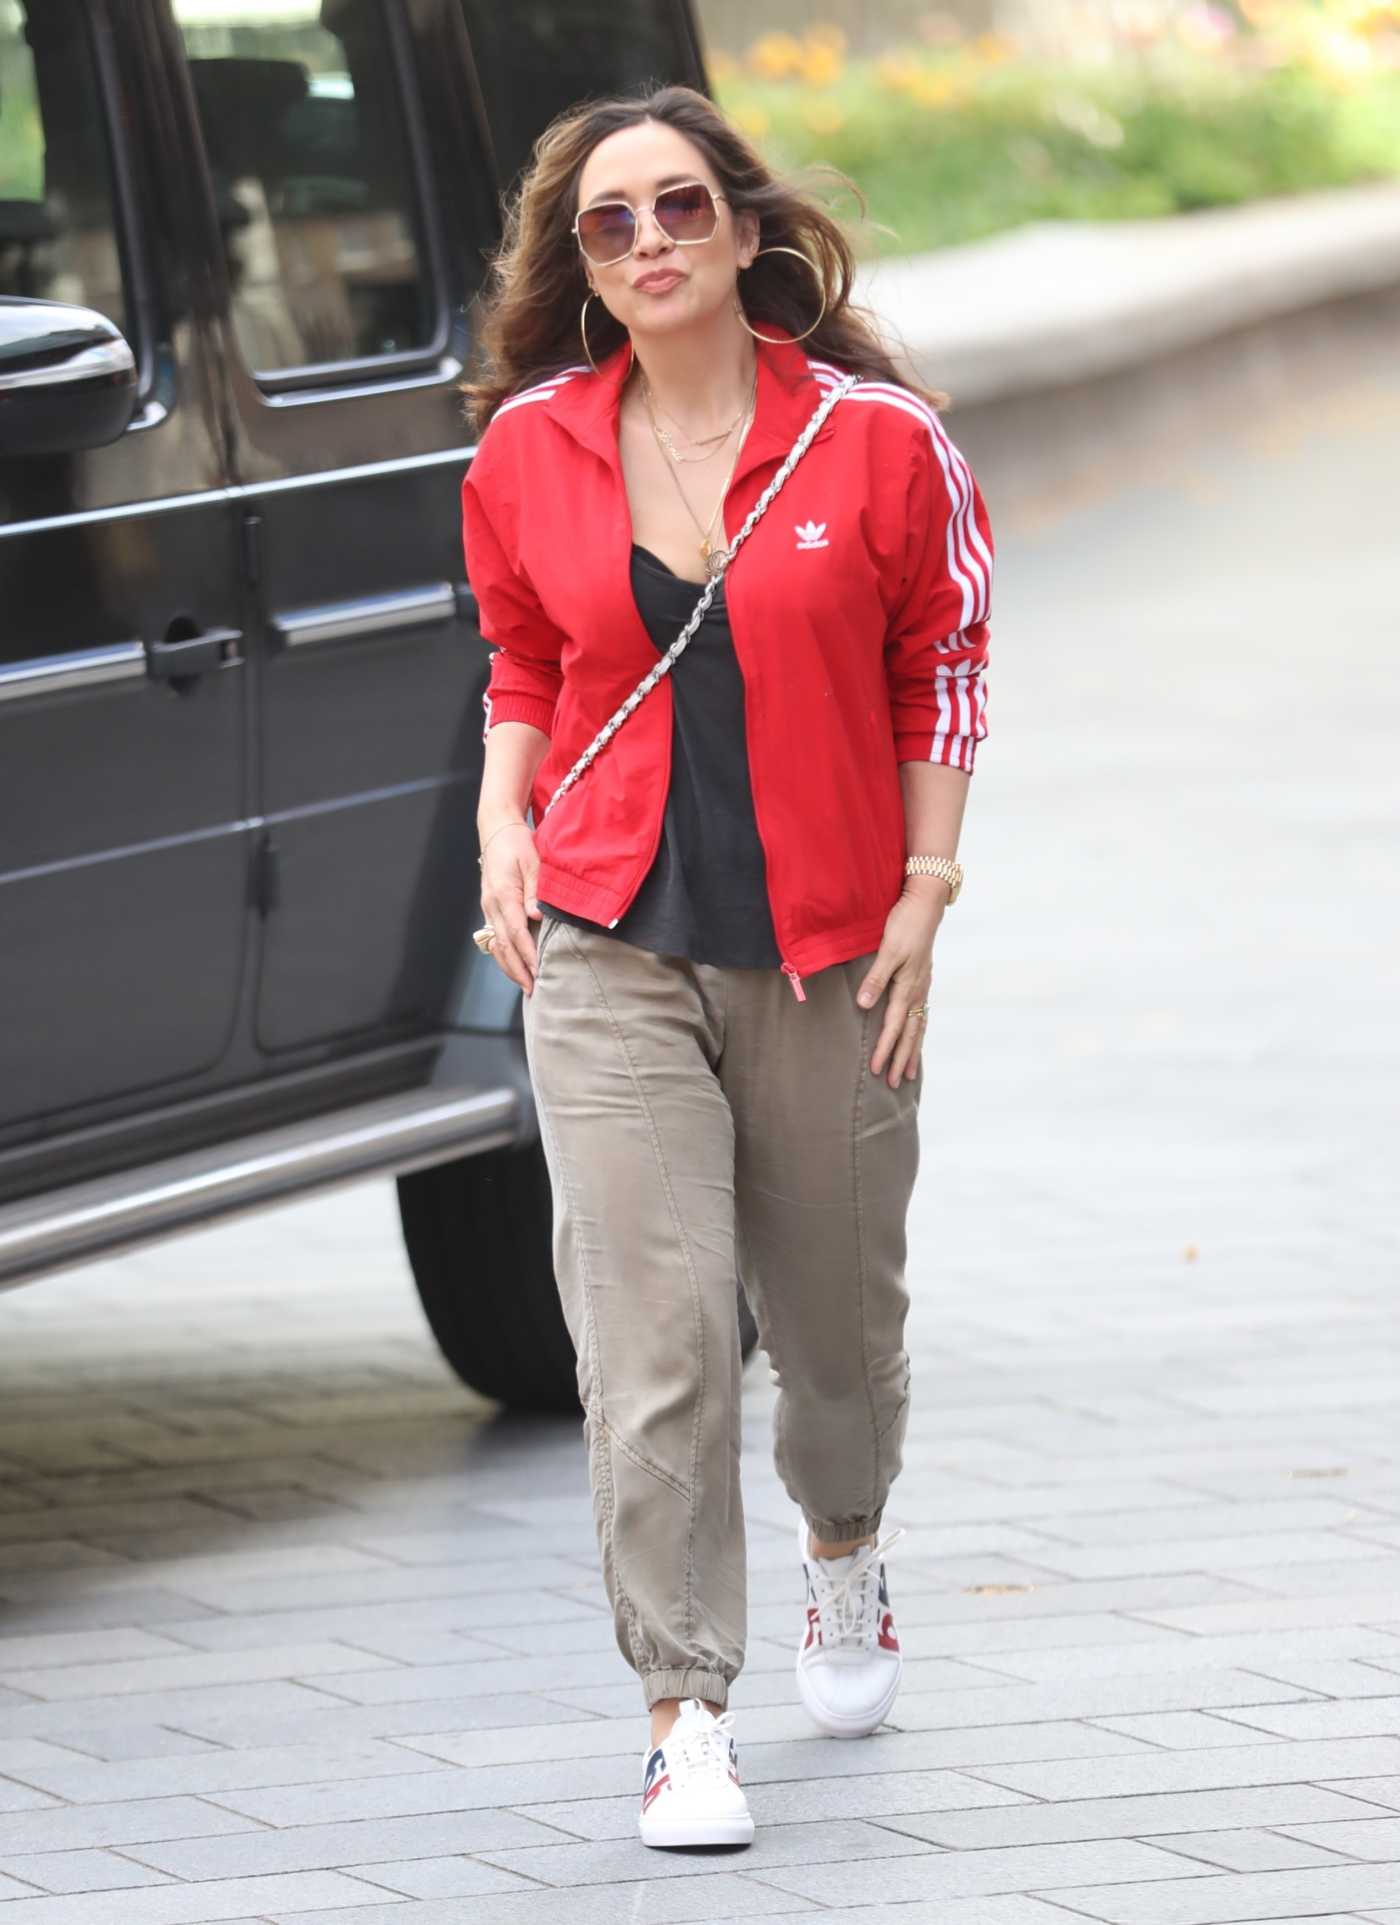 Myleene Klass in a Red Adidas Track Jacket Arrives at the Global Studios in London 05/05/2020